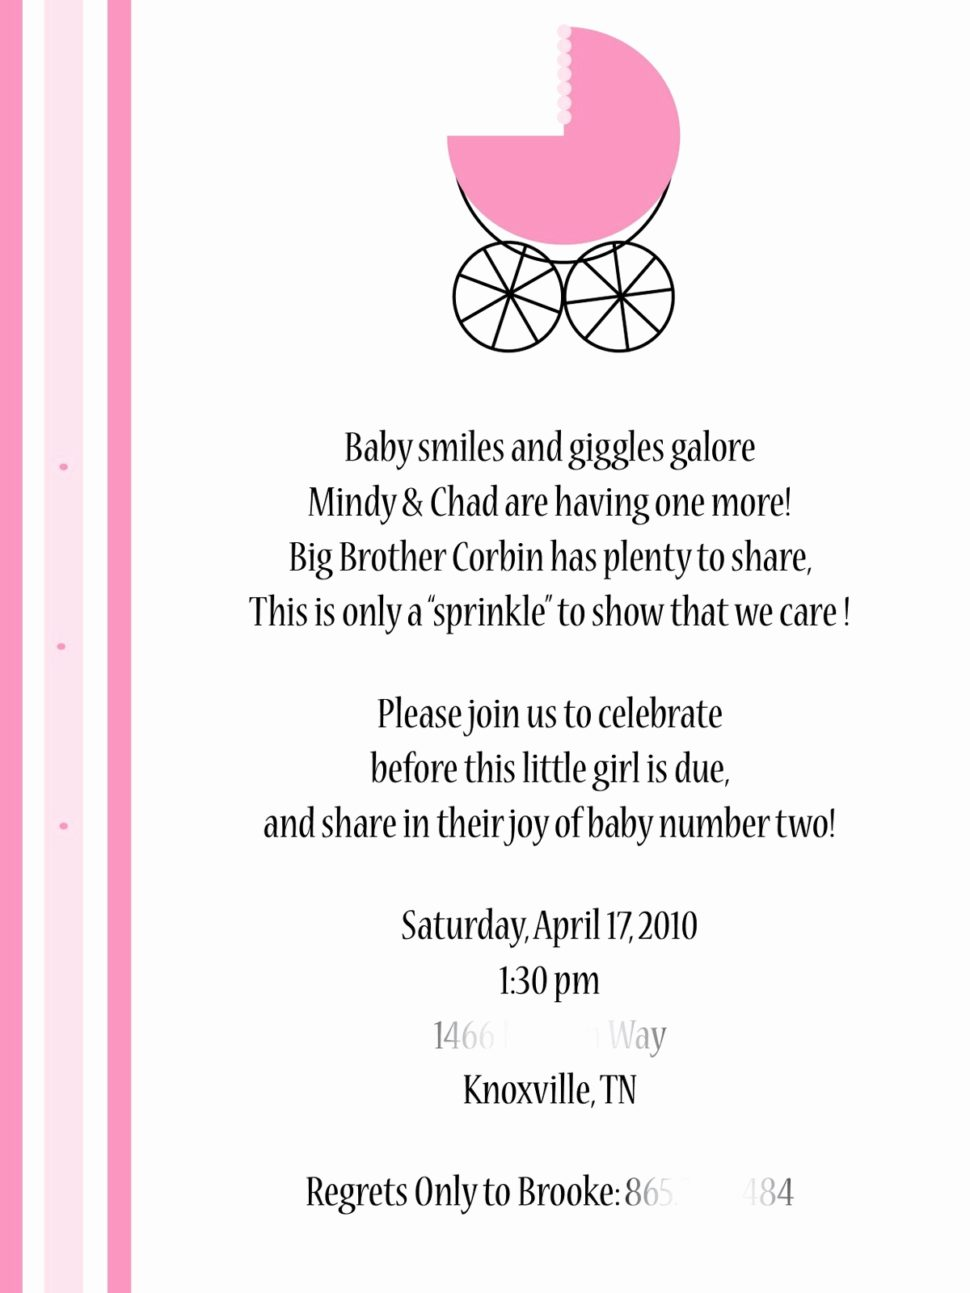 Medium Size of Baby Shower:36+ Retro Baby Shower Thank You Wording Image Concepts Baby Shower Thank You Wording As Well As Coed Baby Shower With Baby Shower Favors To Make Plus Baby Shower Para Niño Together With Ideas Para Baby Shower